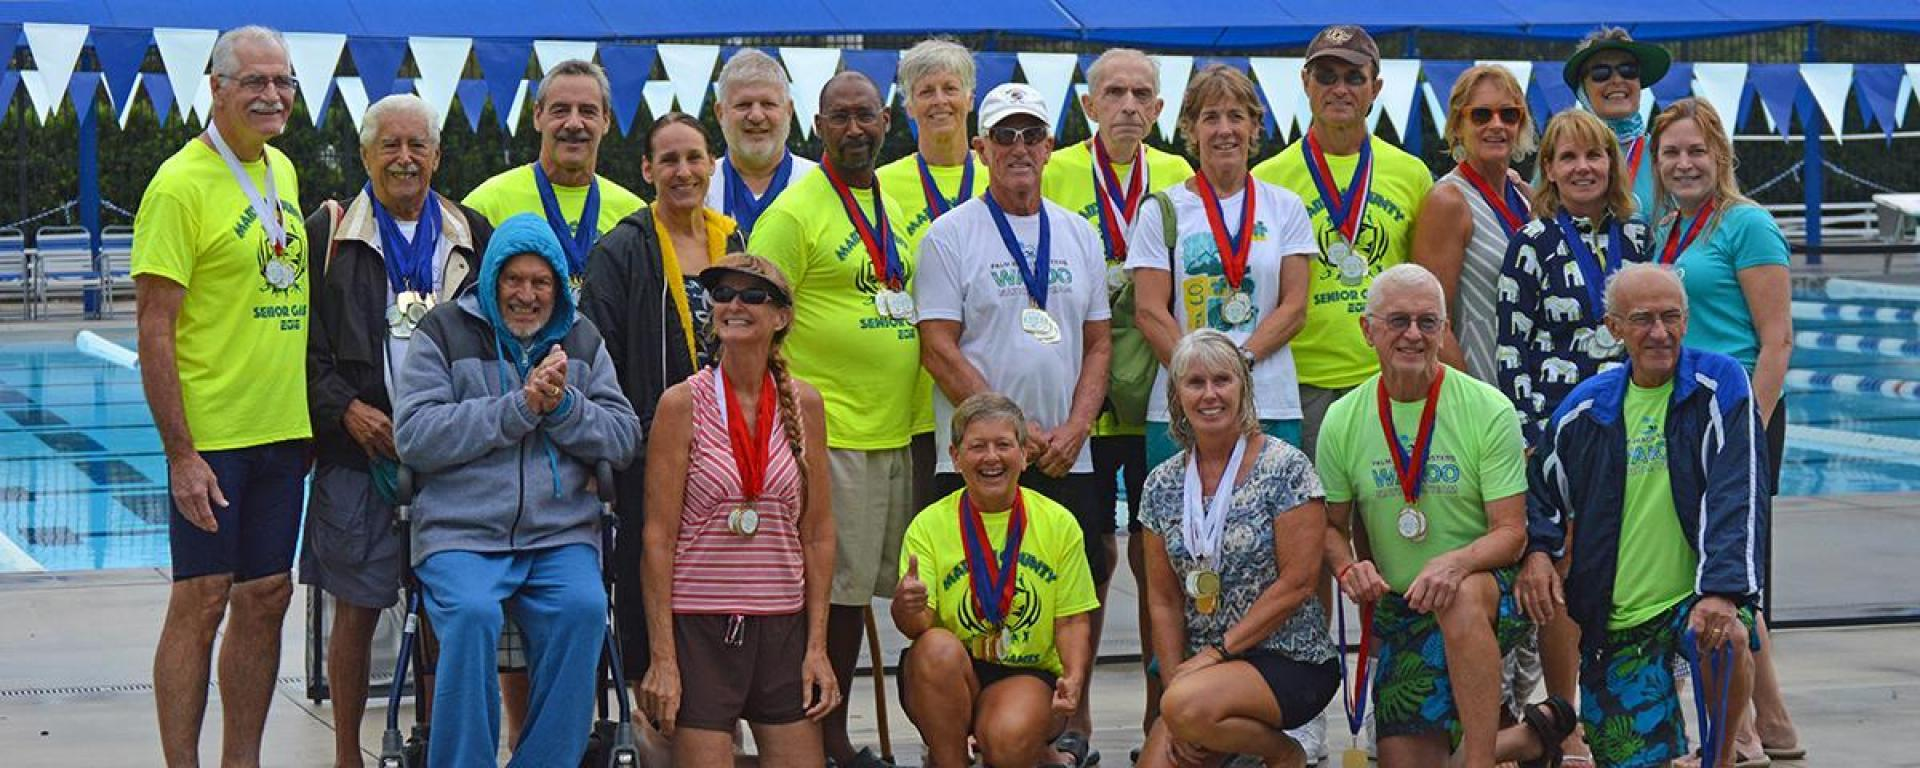 Martin County Senior Games participants with medals.